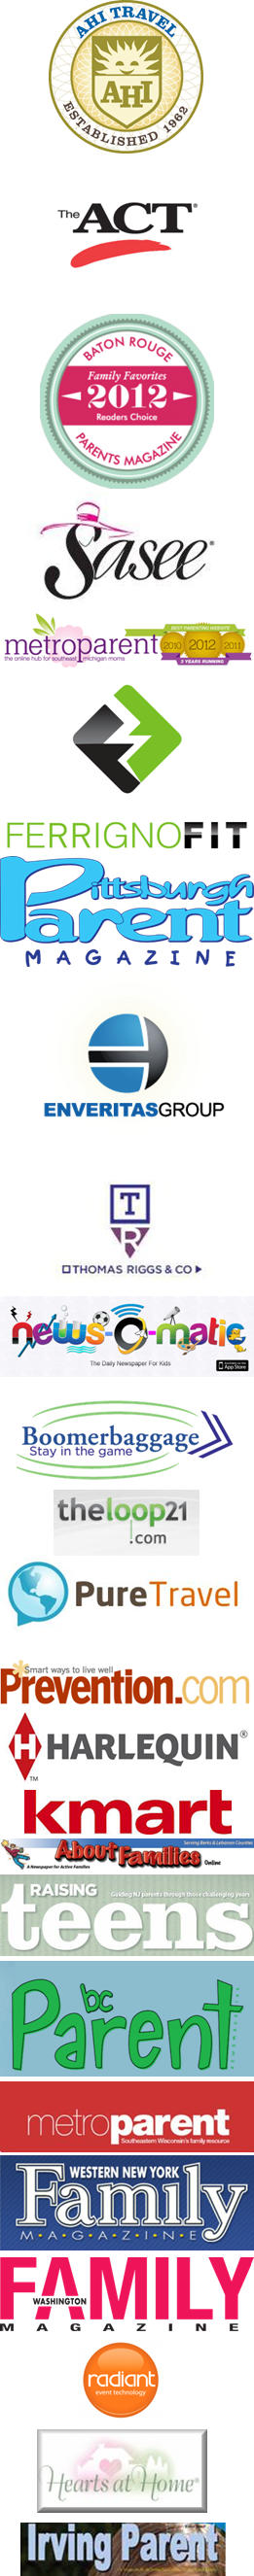 Magazine & Business Logos